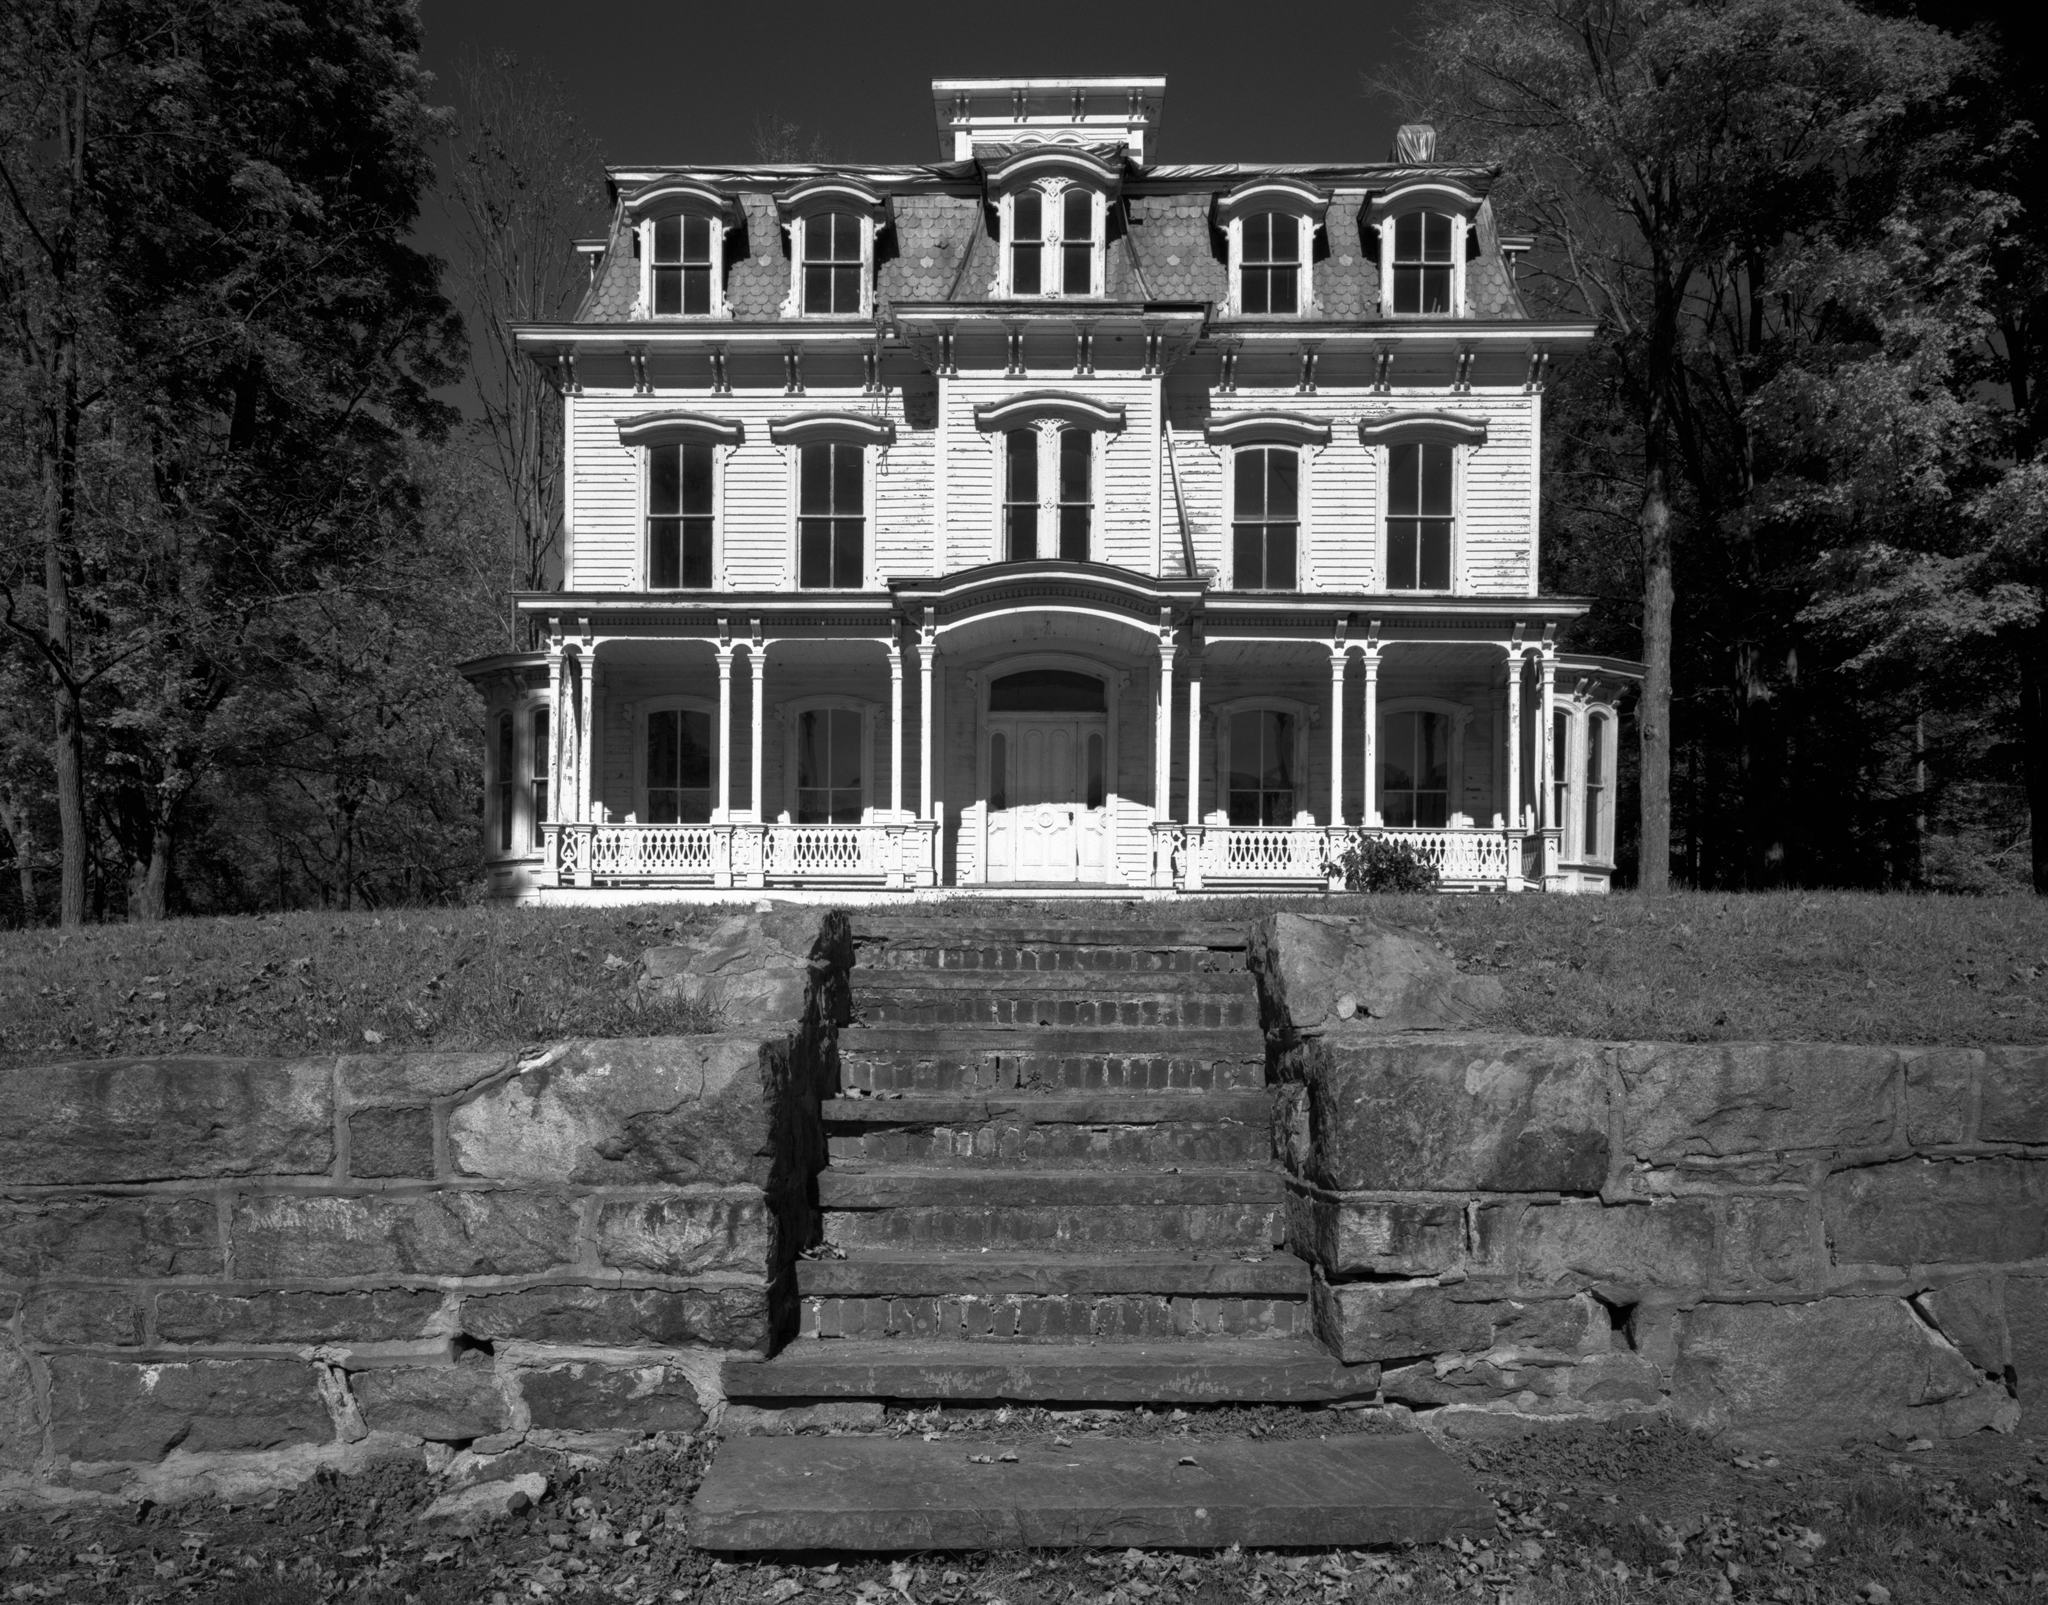 4x5_for_365_project_0293_Waterloo_Village_Peter_D_Smith_House.png